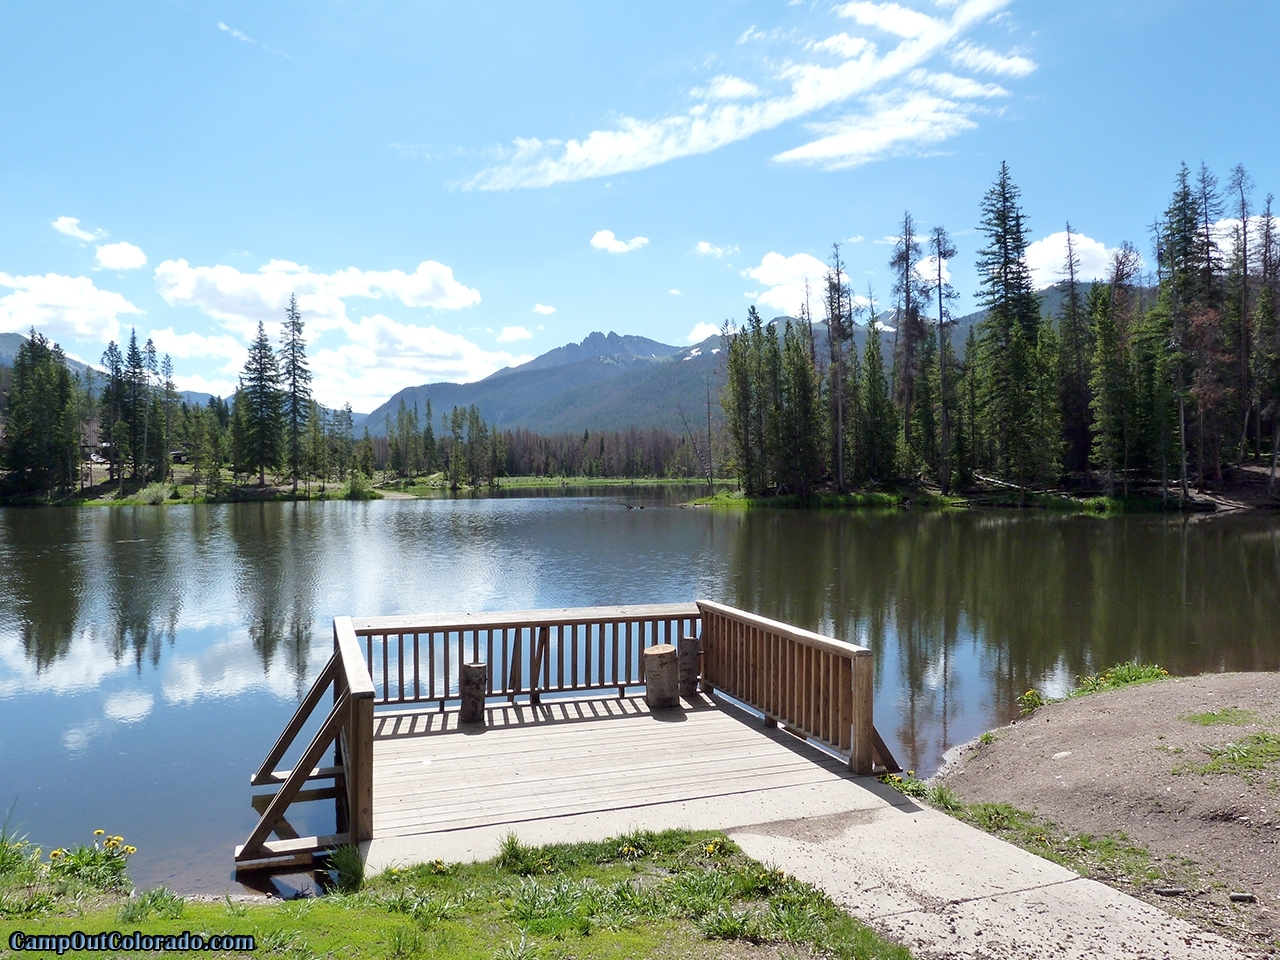 camp-out-colorado-ranger-lakes-campground-fishing-peer.jpg